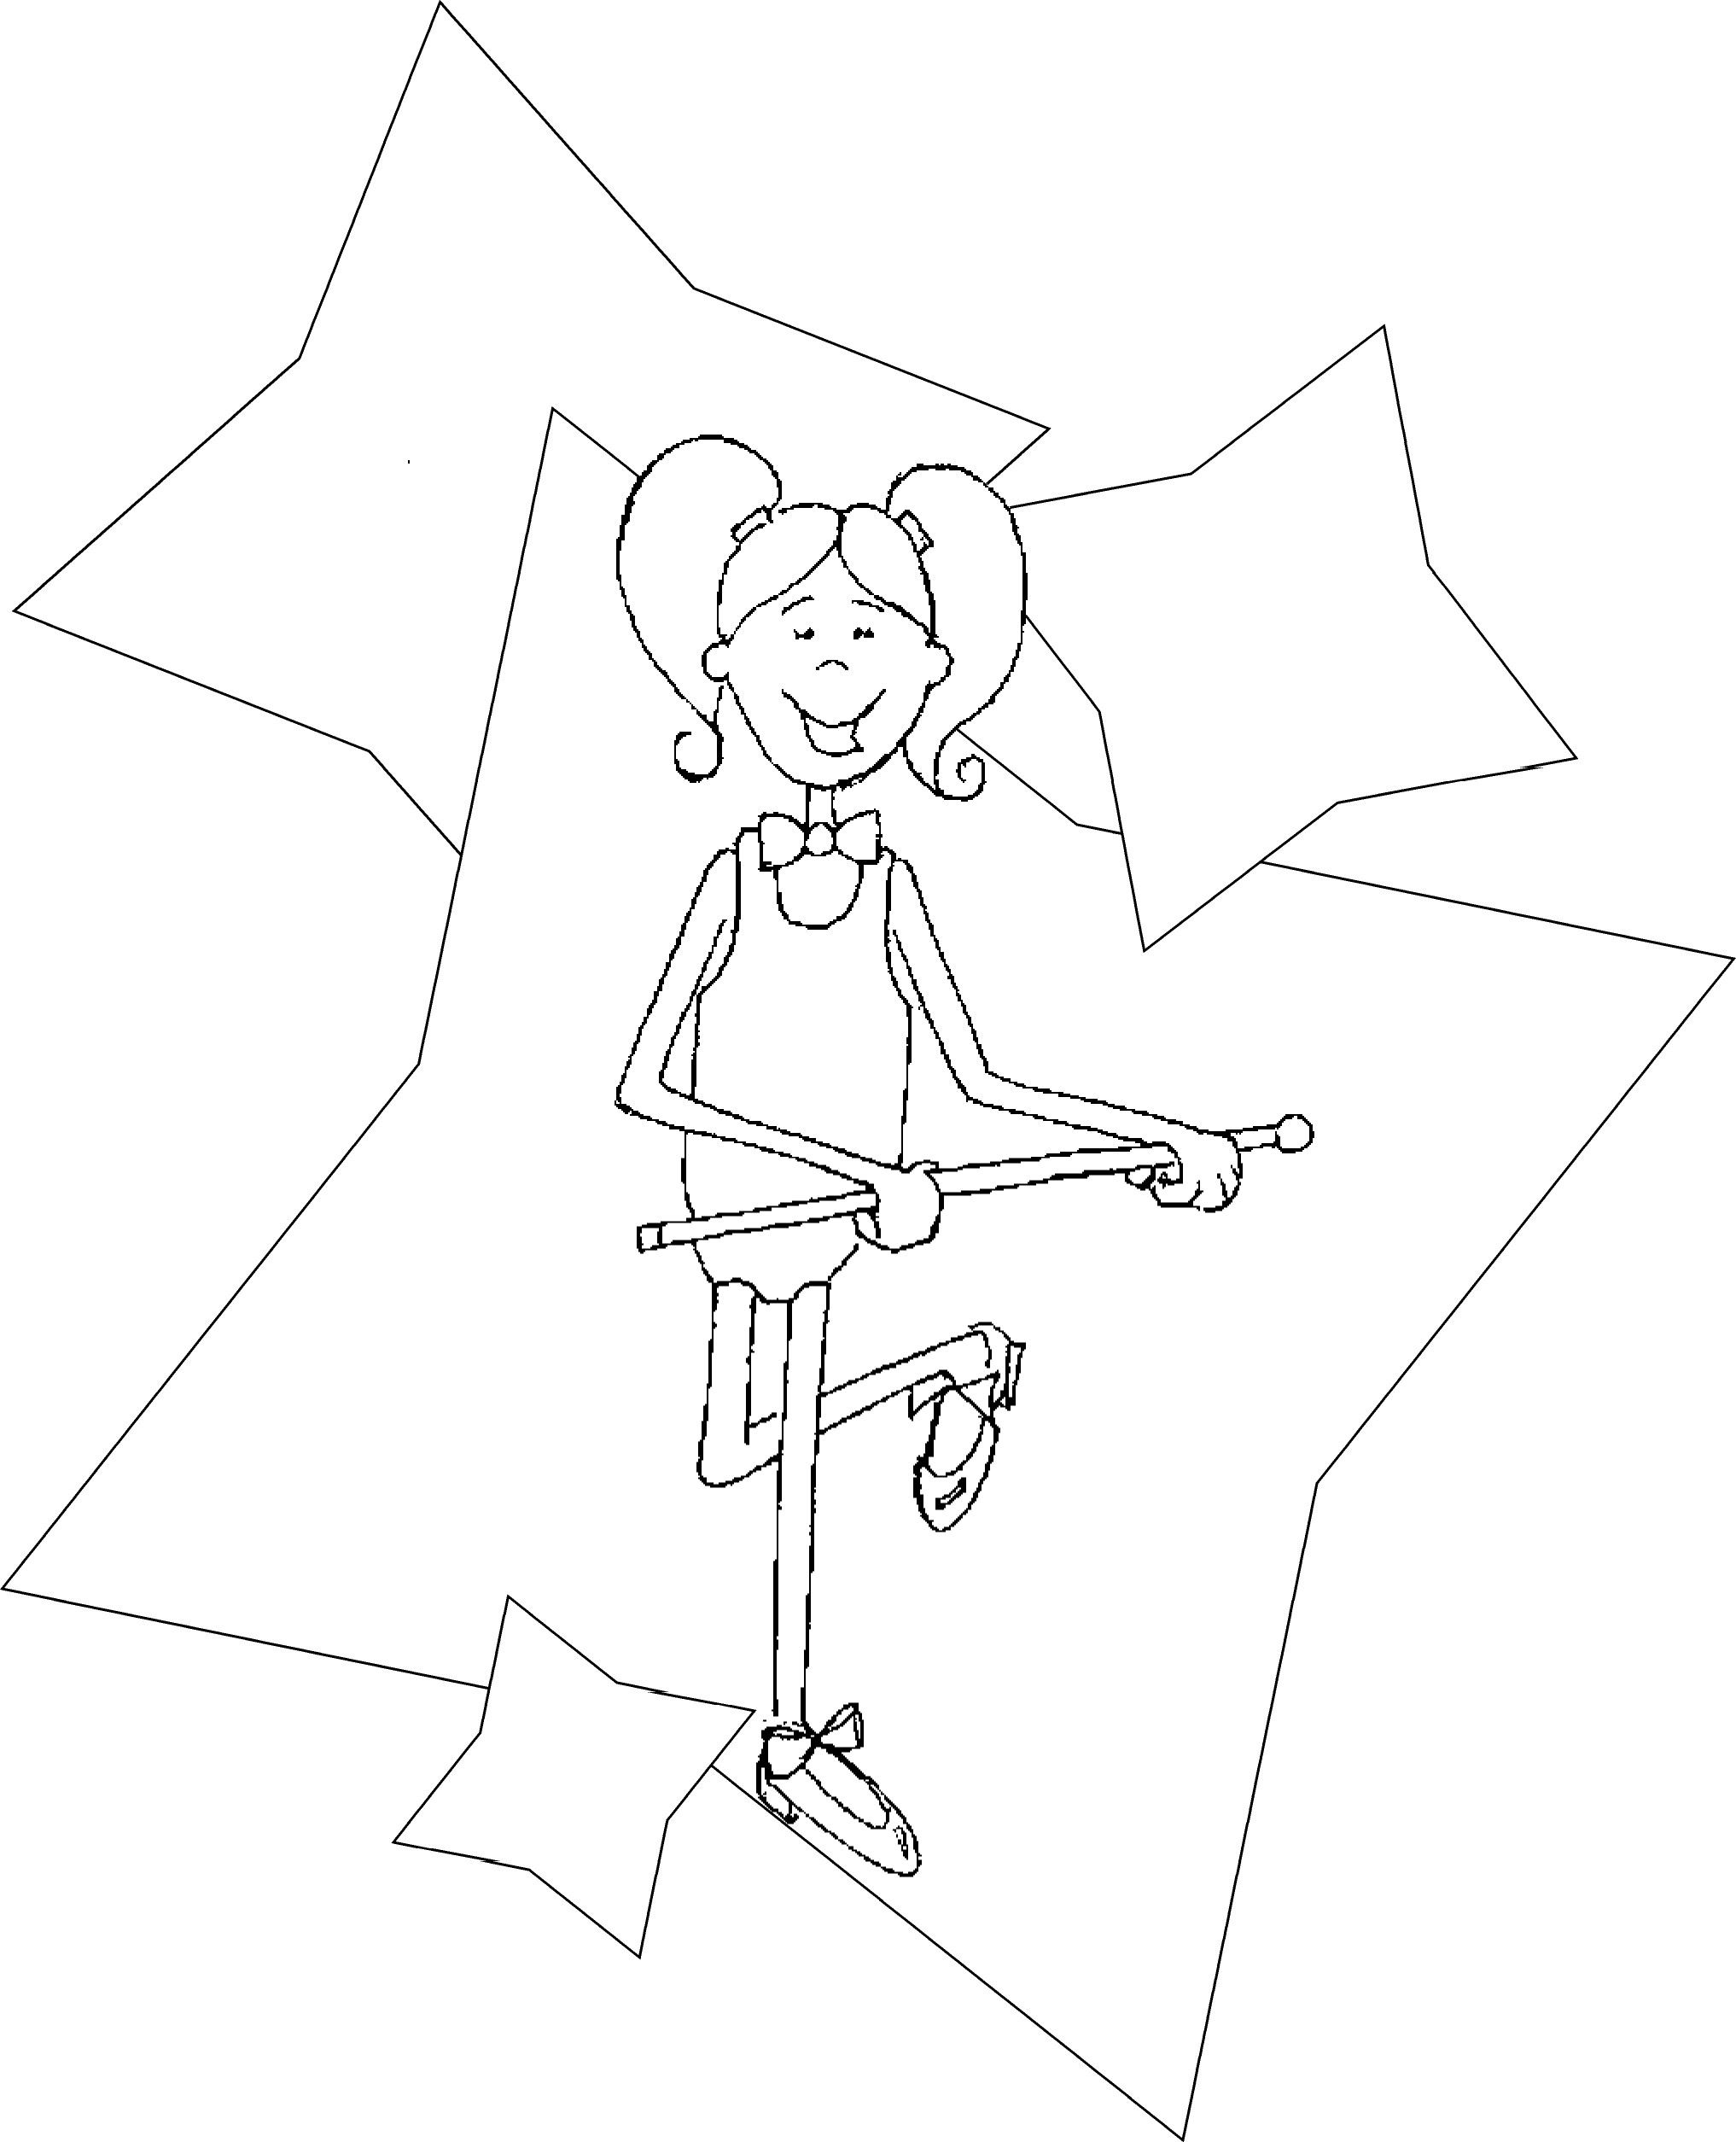 Tap Dance Coloring Pages At Getcolorings